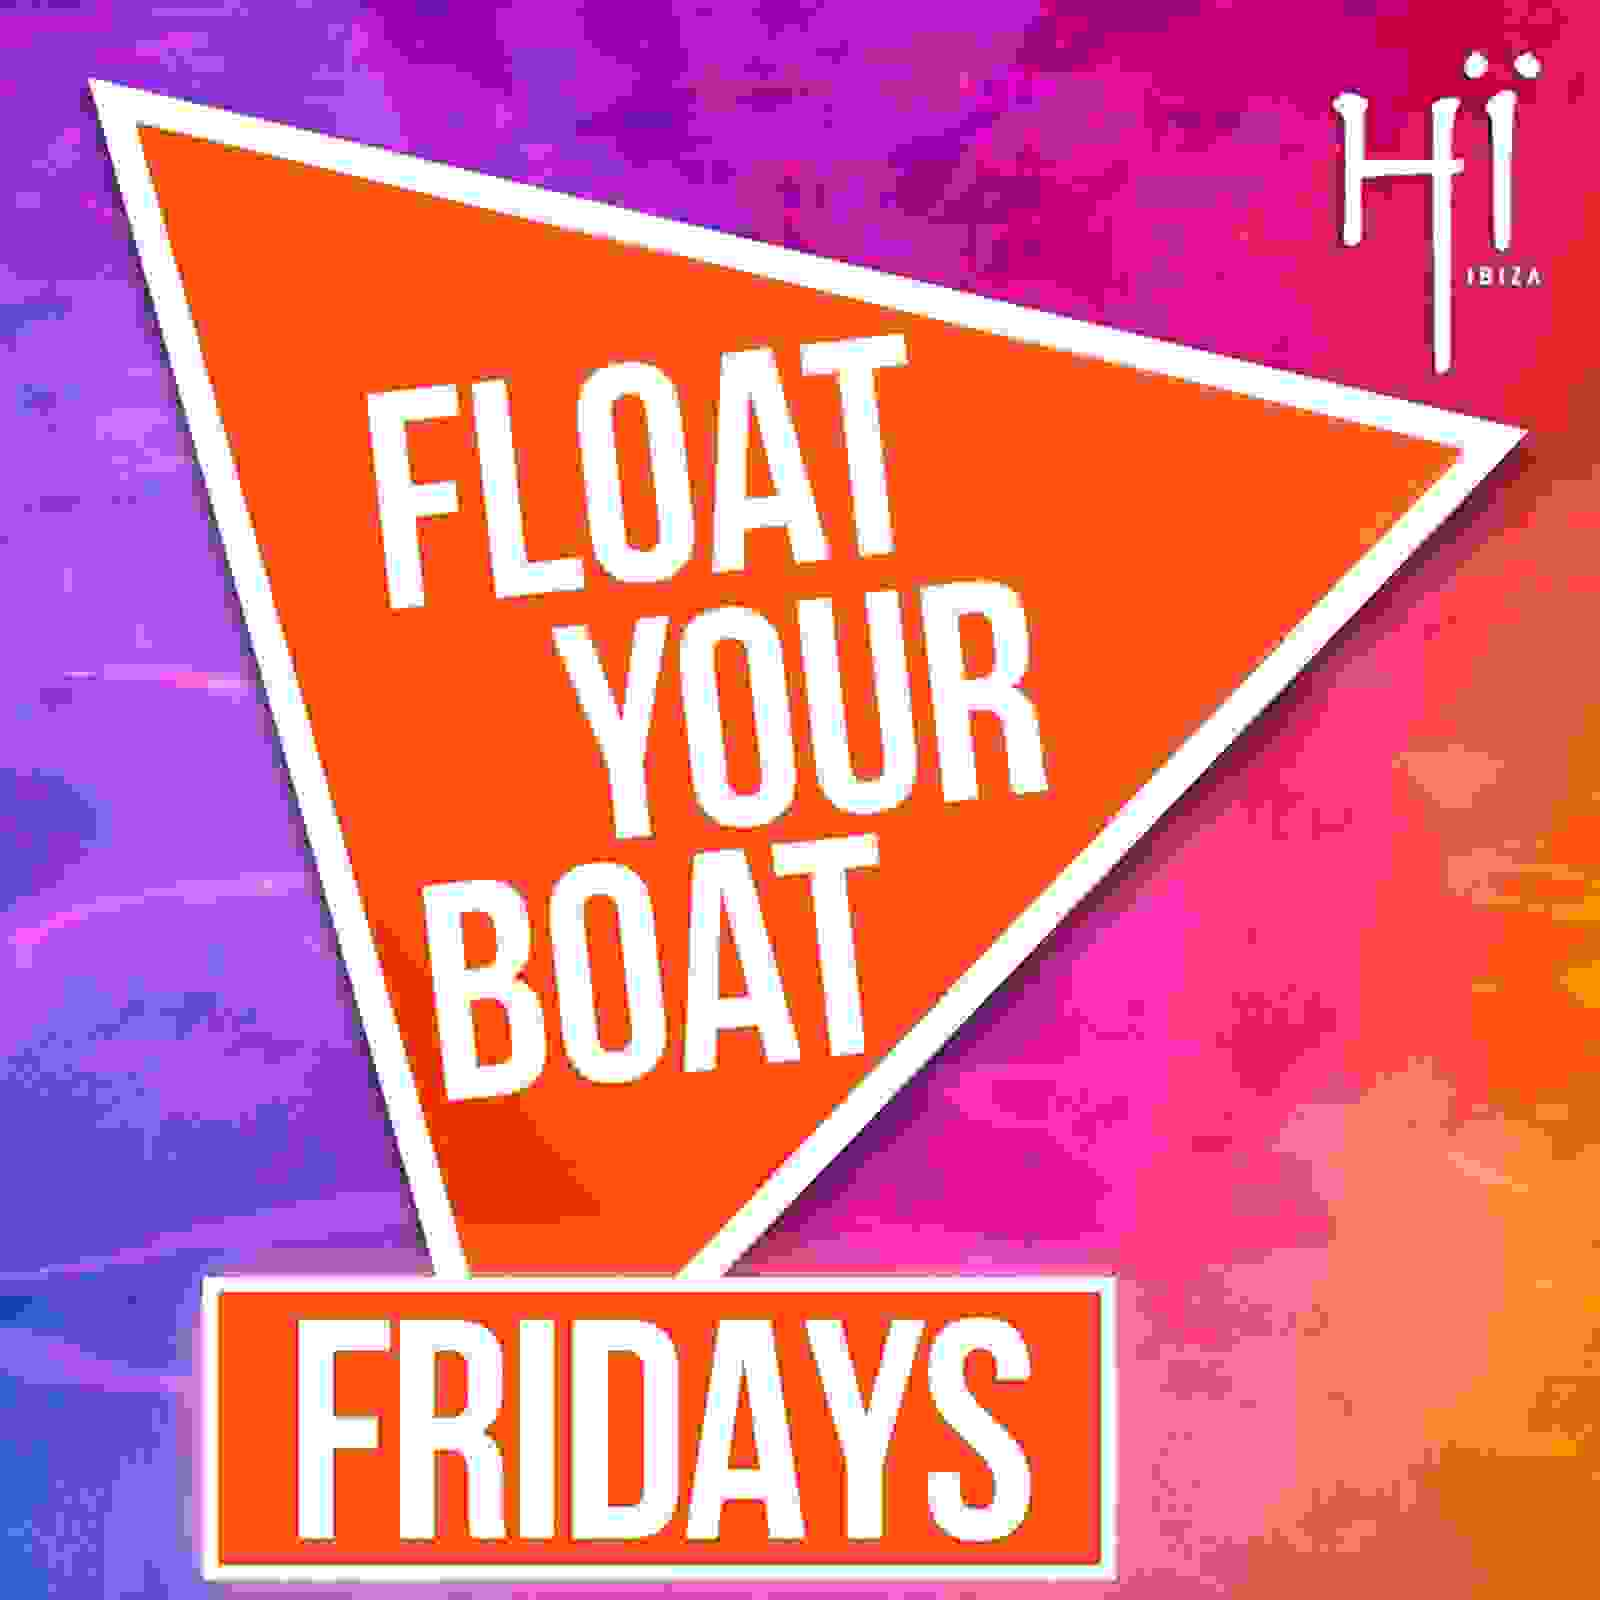 FLOAT YOUR BOAT – TUESDAYS – WITH ENTRY TO HÏ IBIZA FOR ERIC PRYDZ